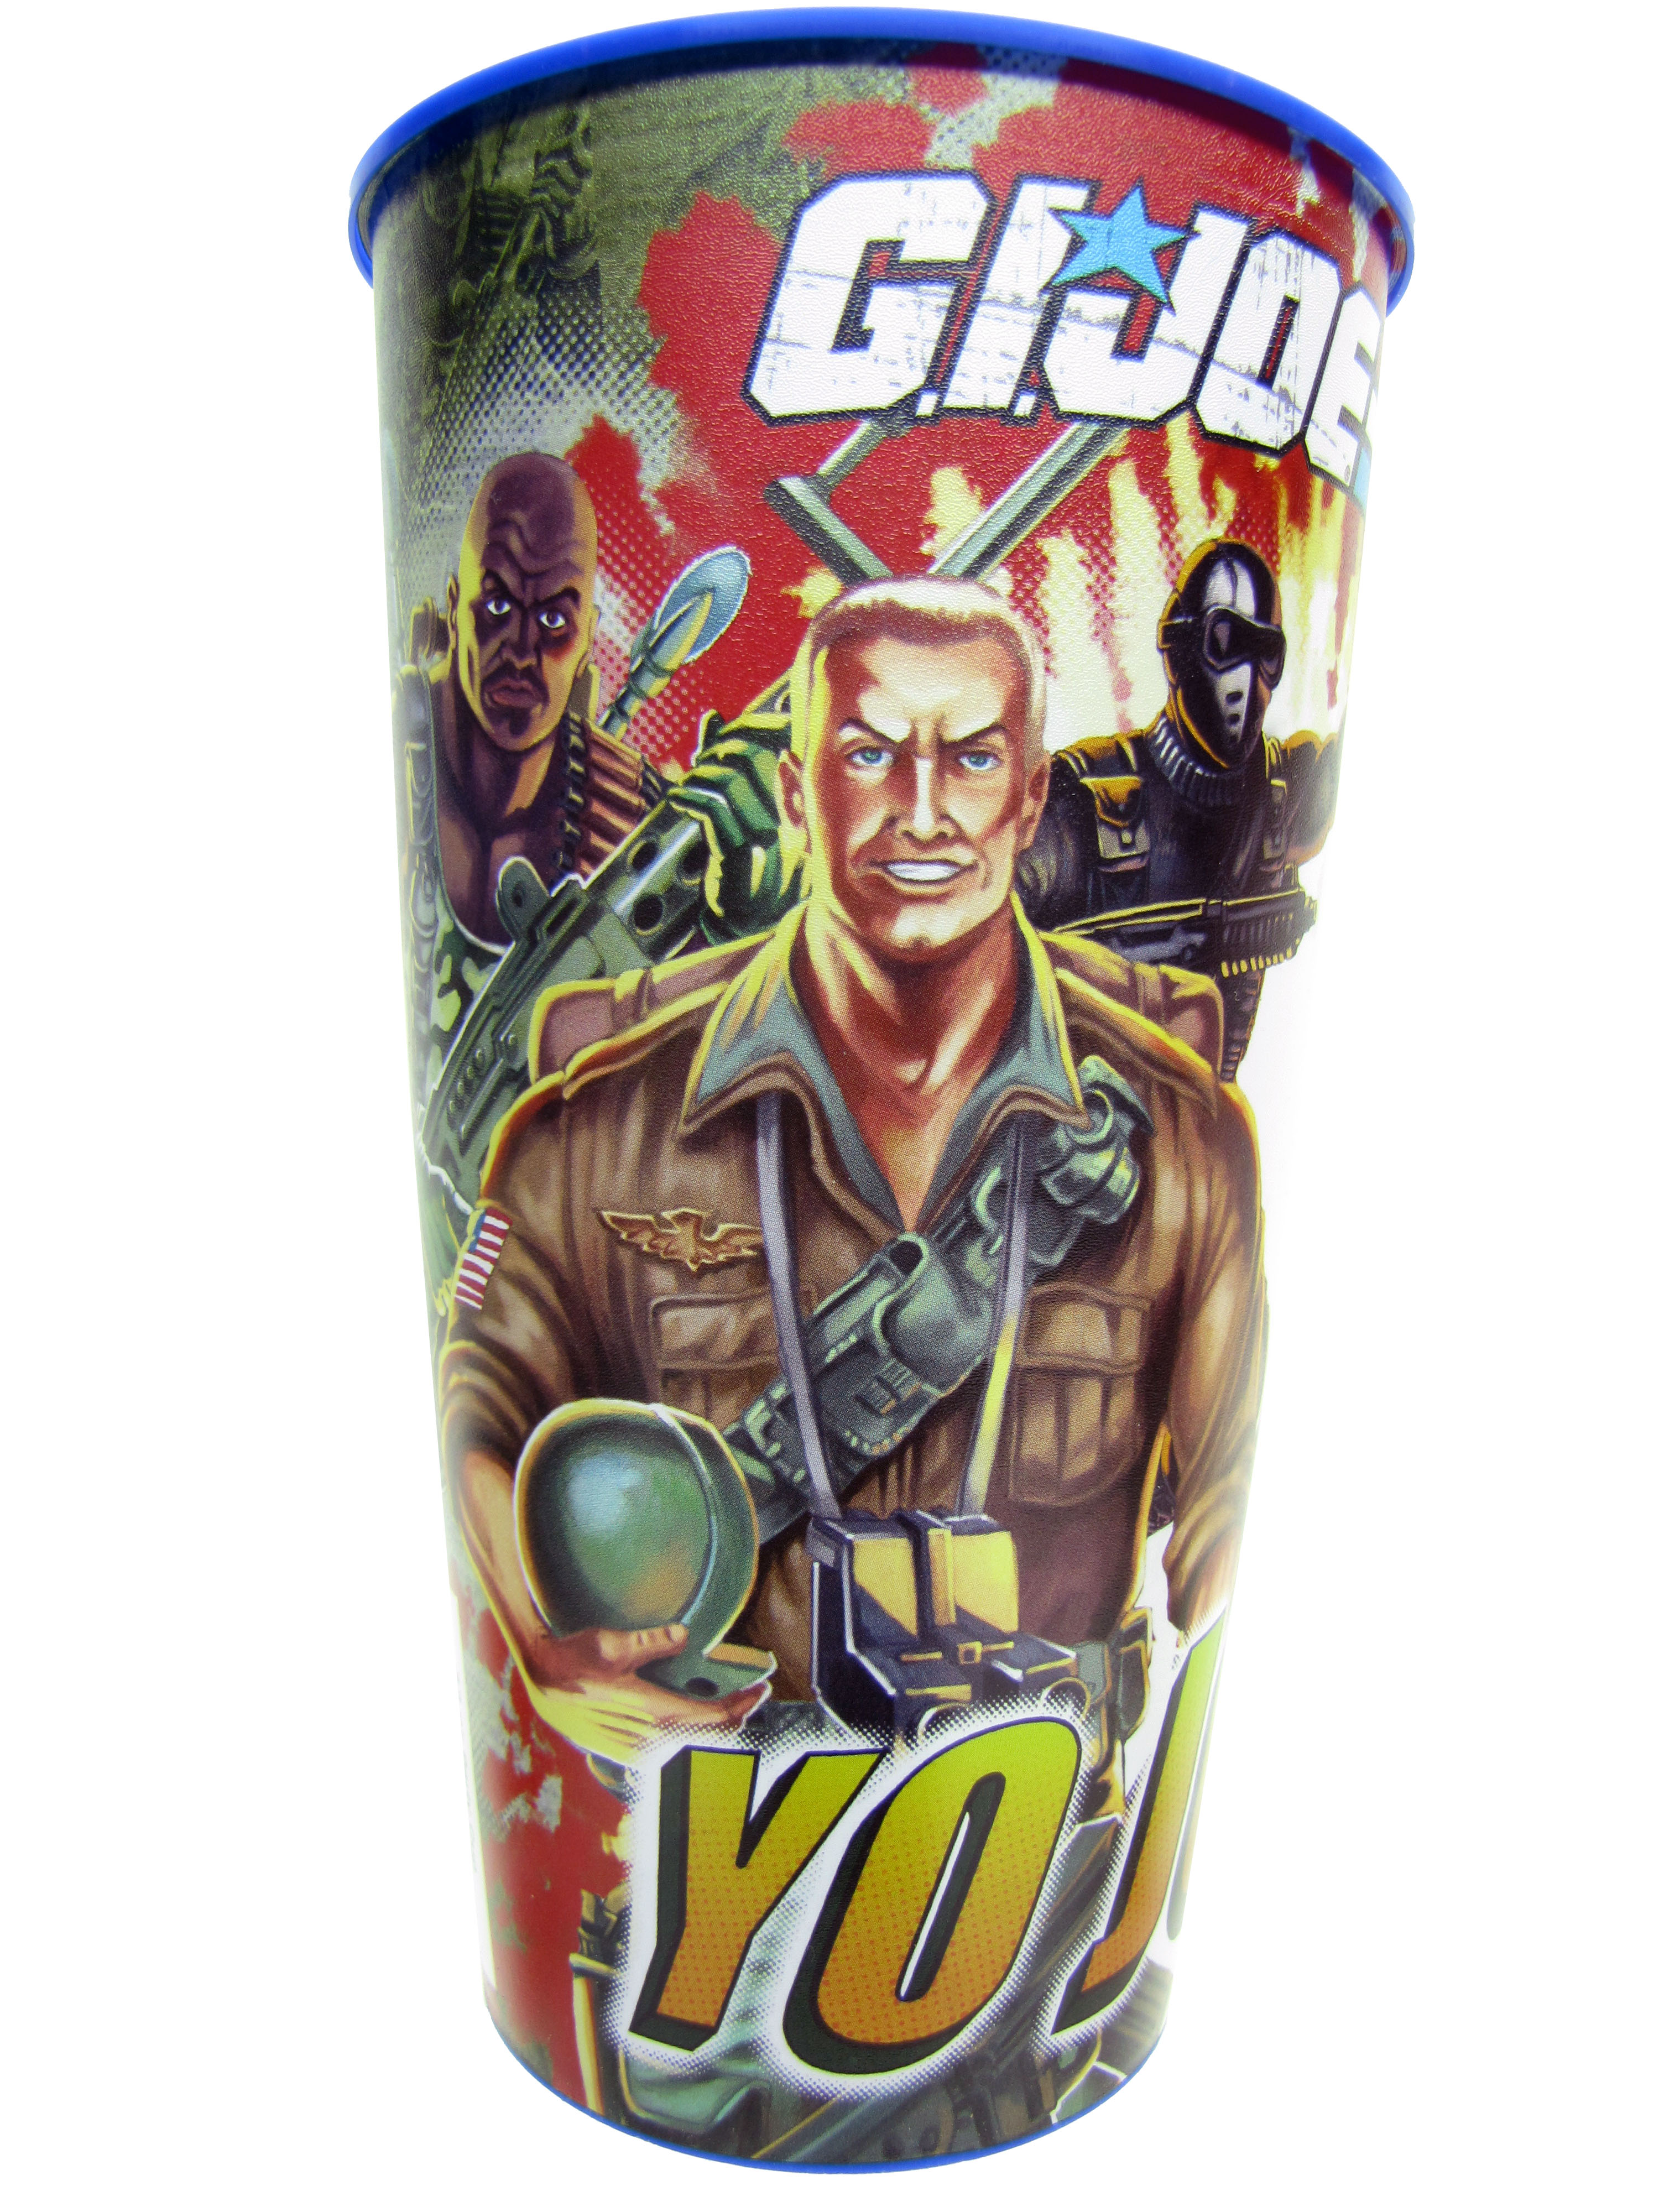 Retro GIJoe Party Cup